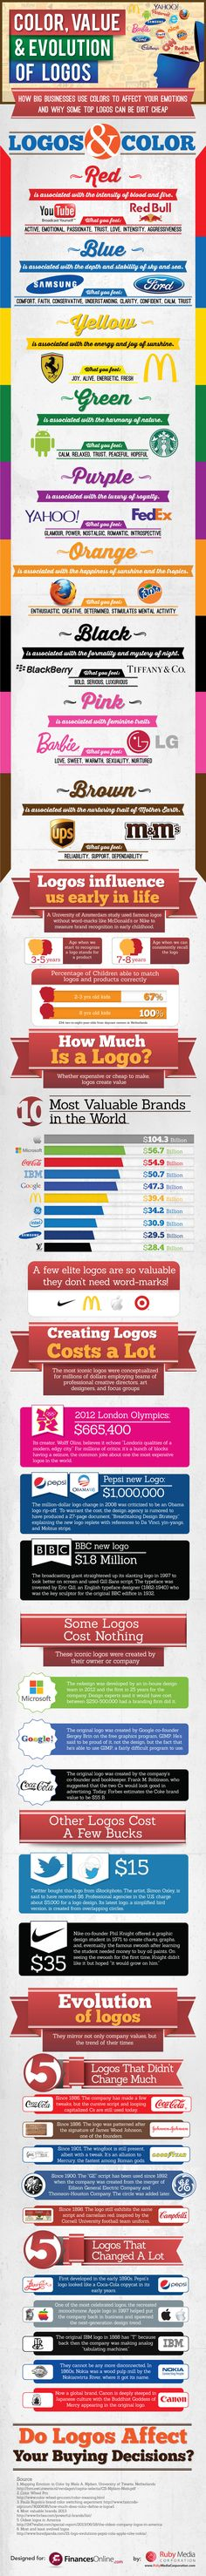 What Does the Color of Your Logo Say About Your Business? #Infographic